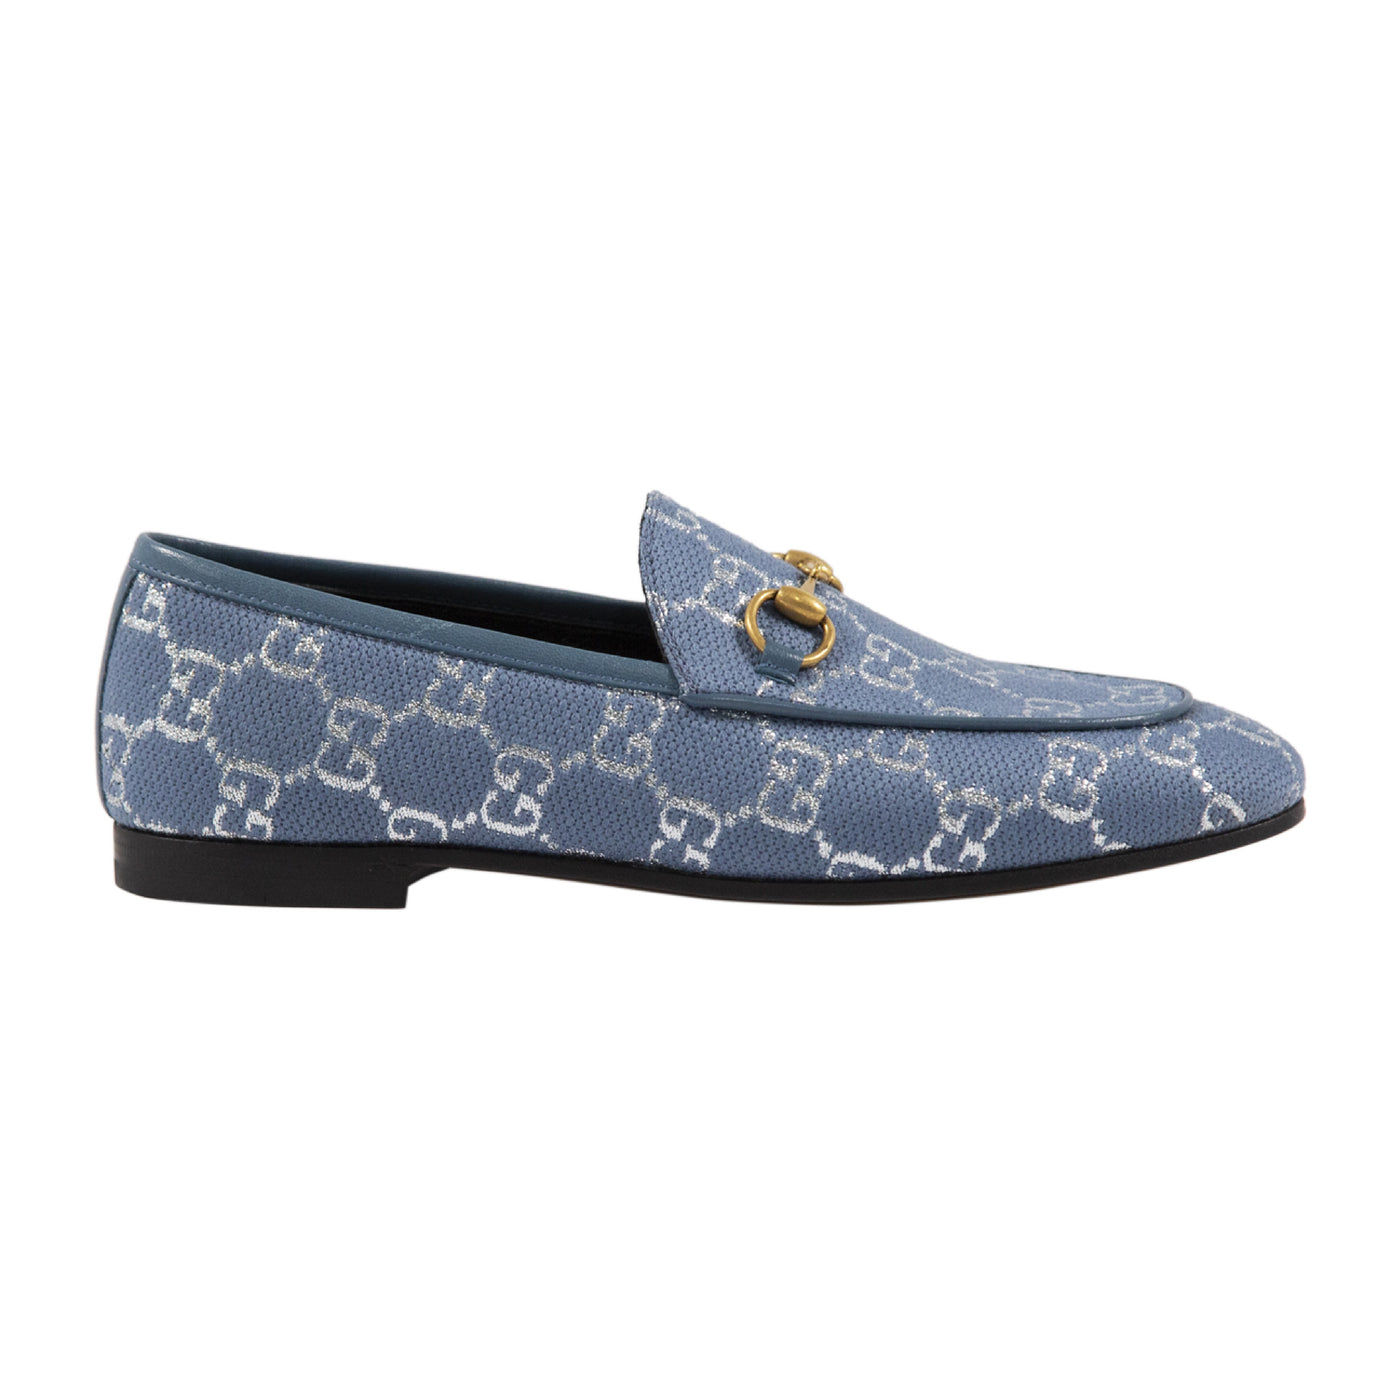 Load image into Gallery viewer, GUCCI LAM� LOAFER BLUE